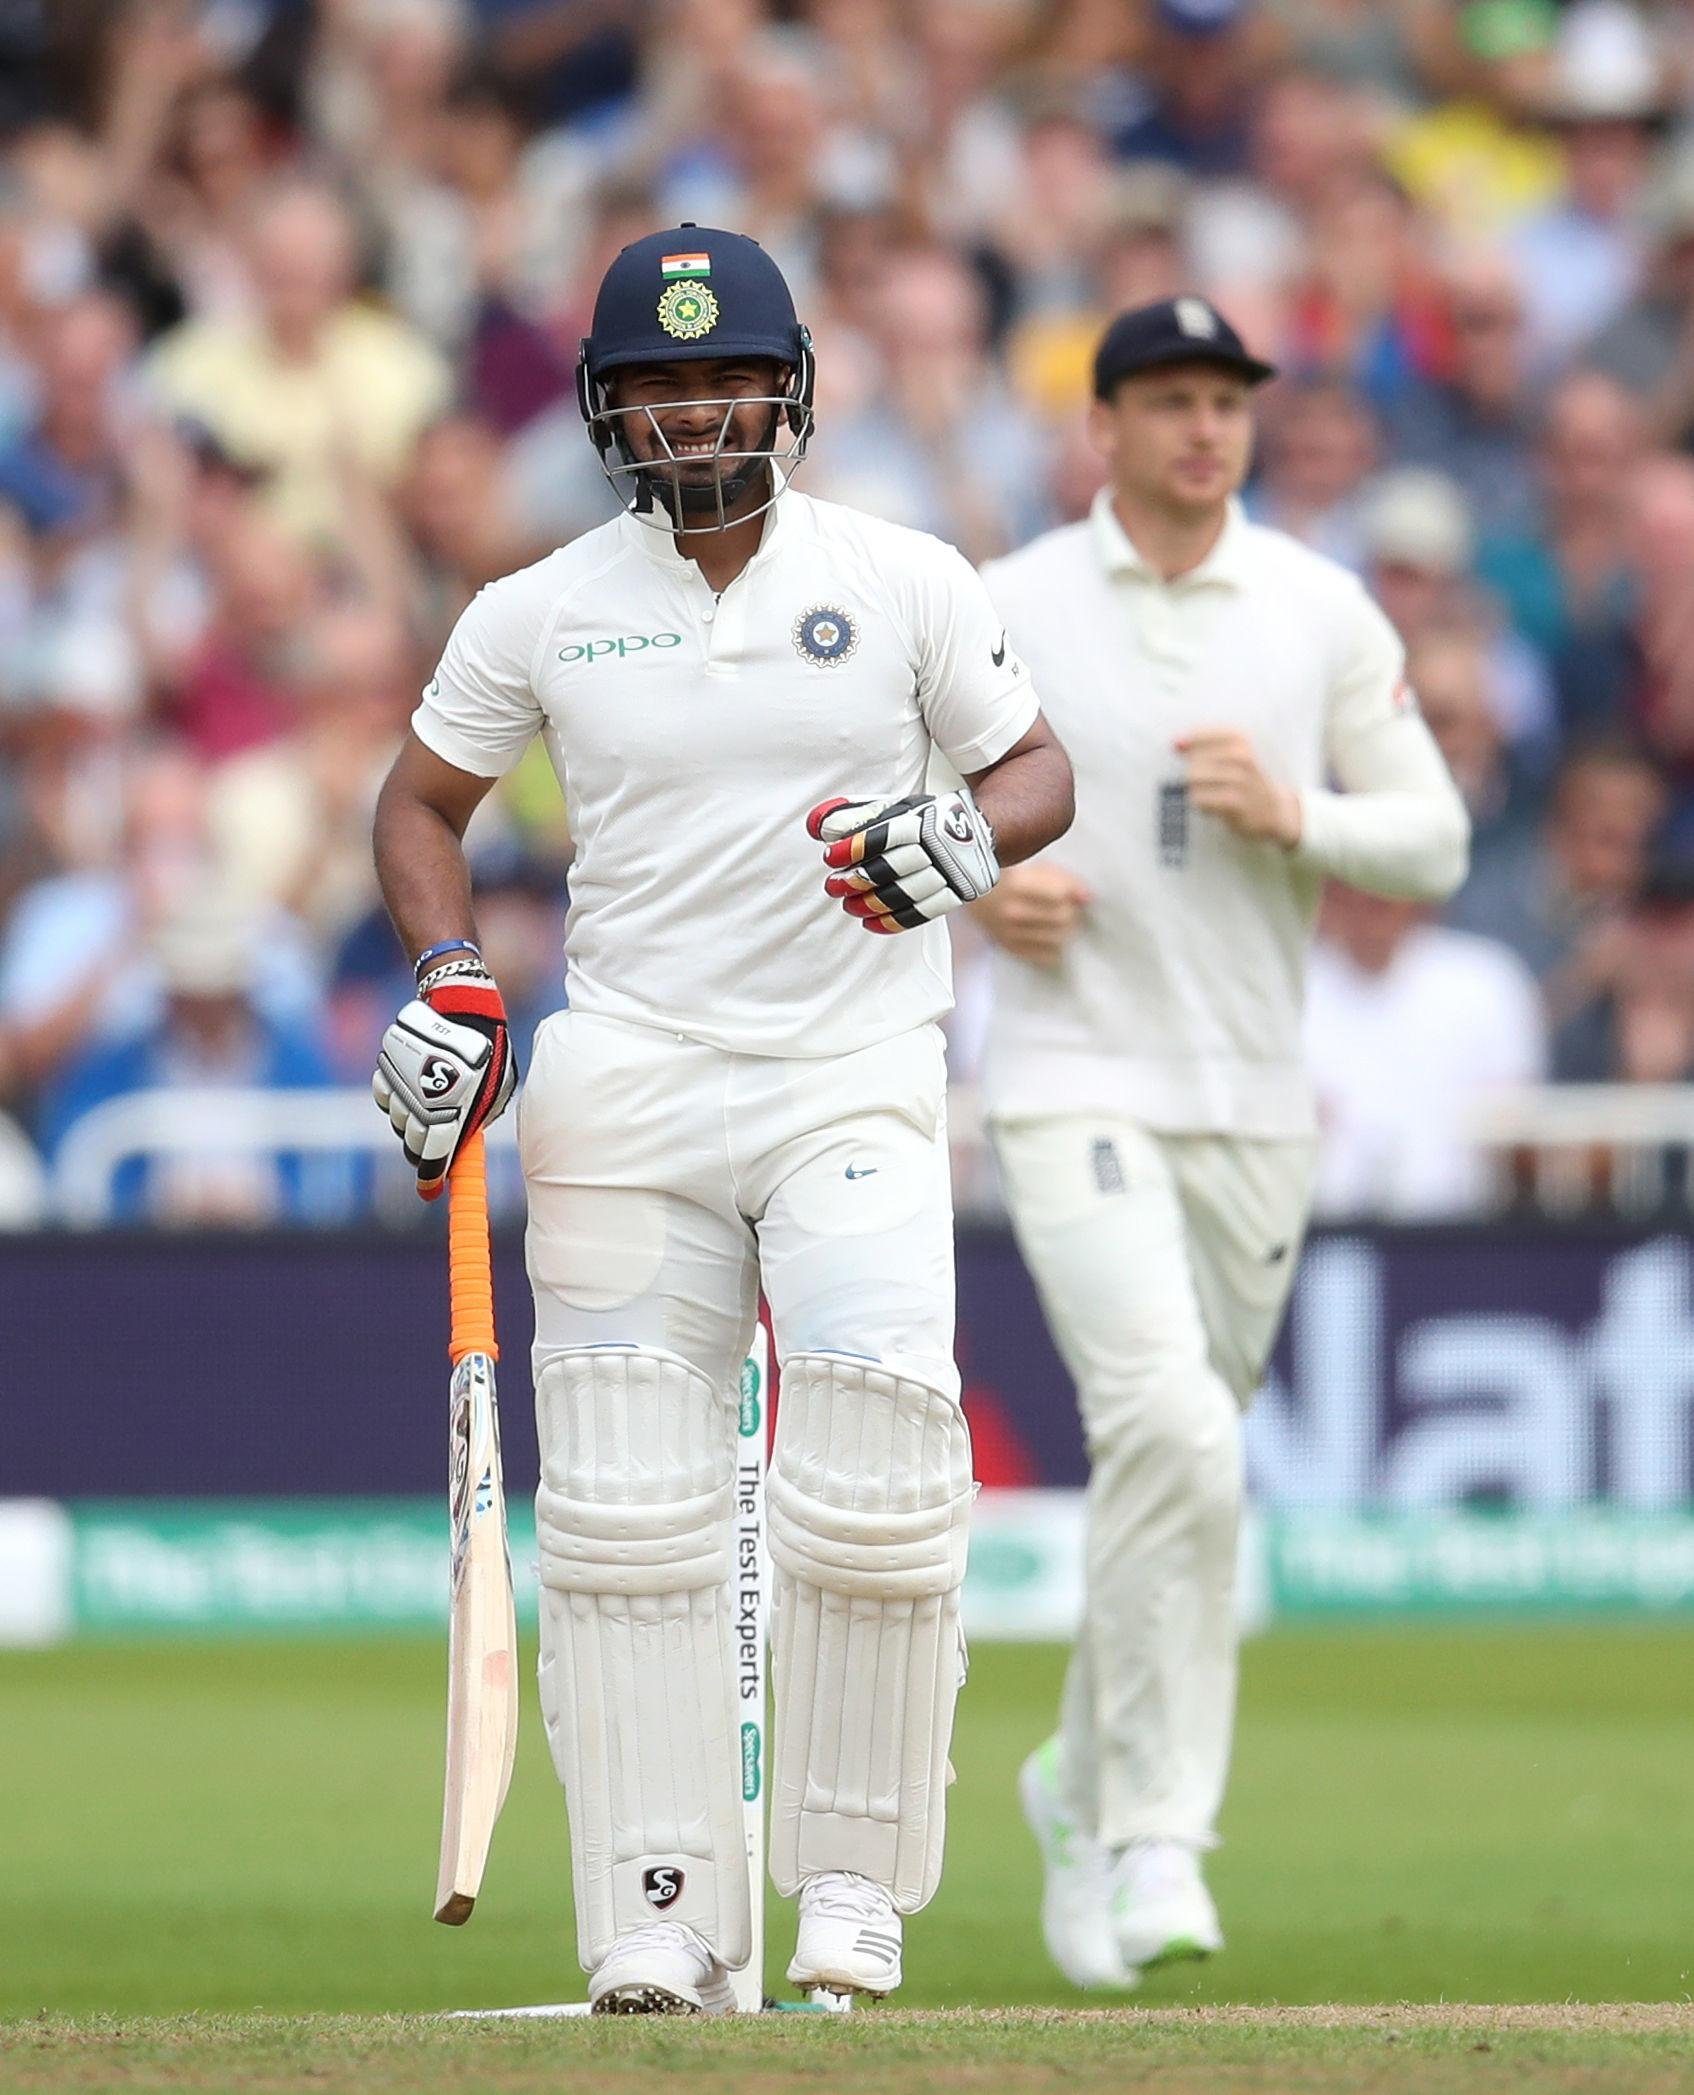 Rishabh Pant was provoked by Stuart Broad, according to the ICC